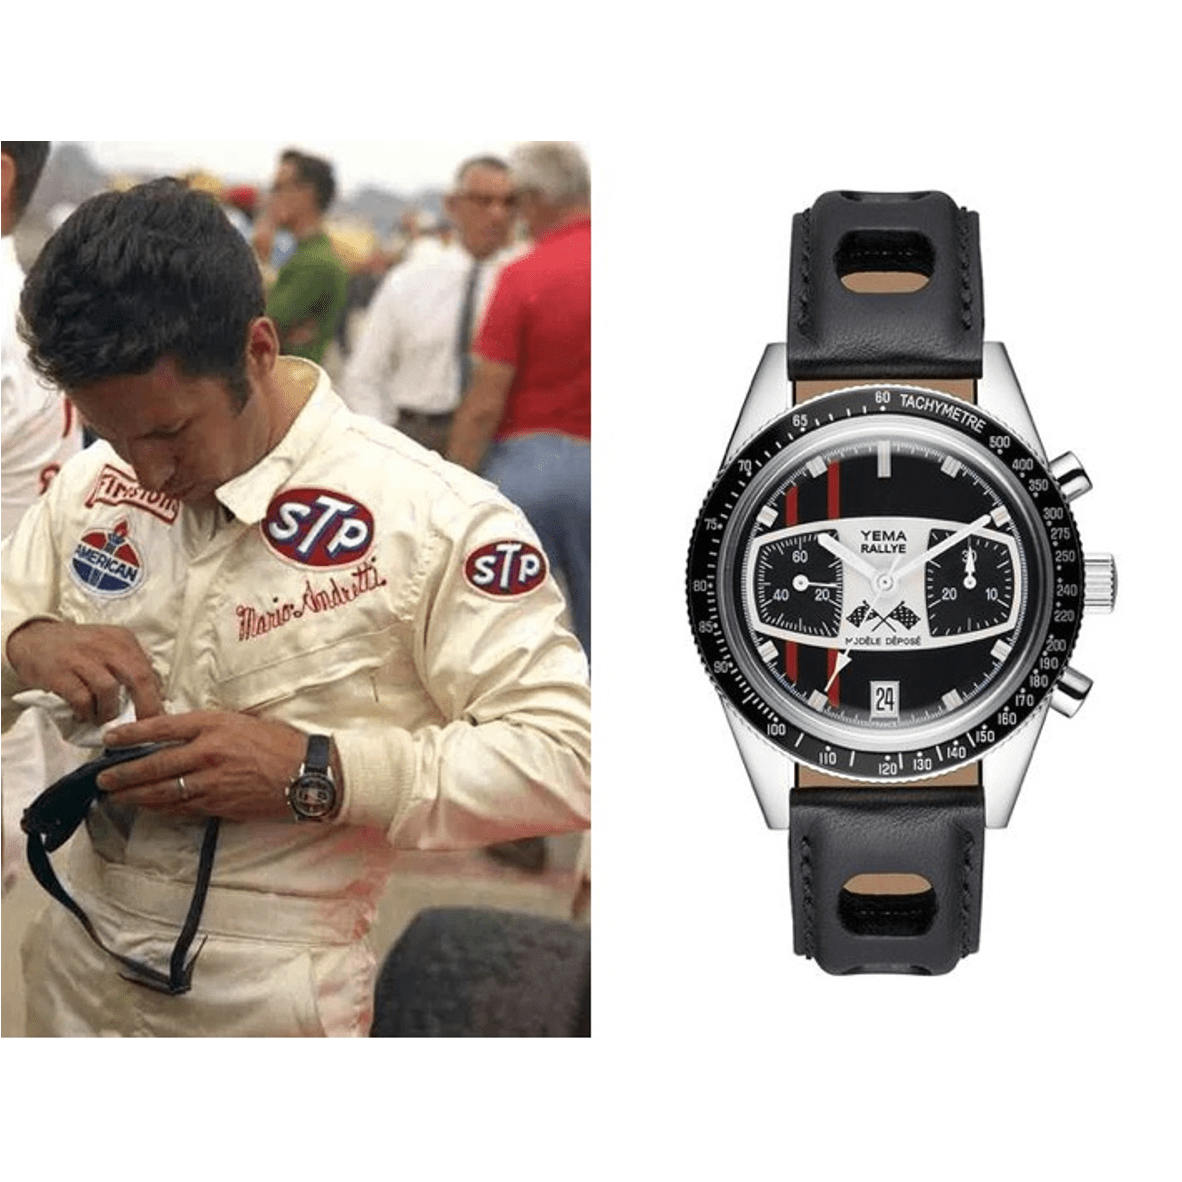 Racing Watches: Yema & Mario Andretti